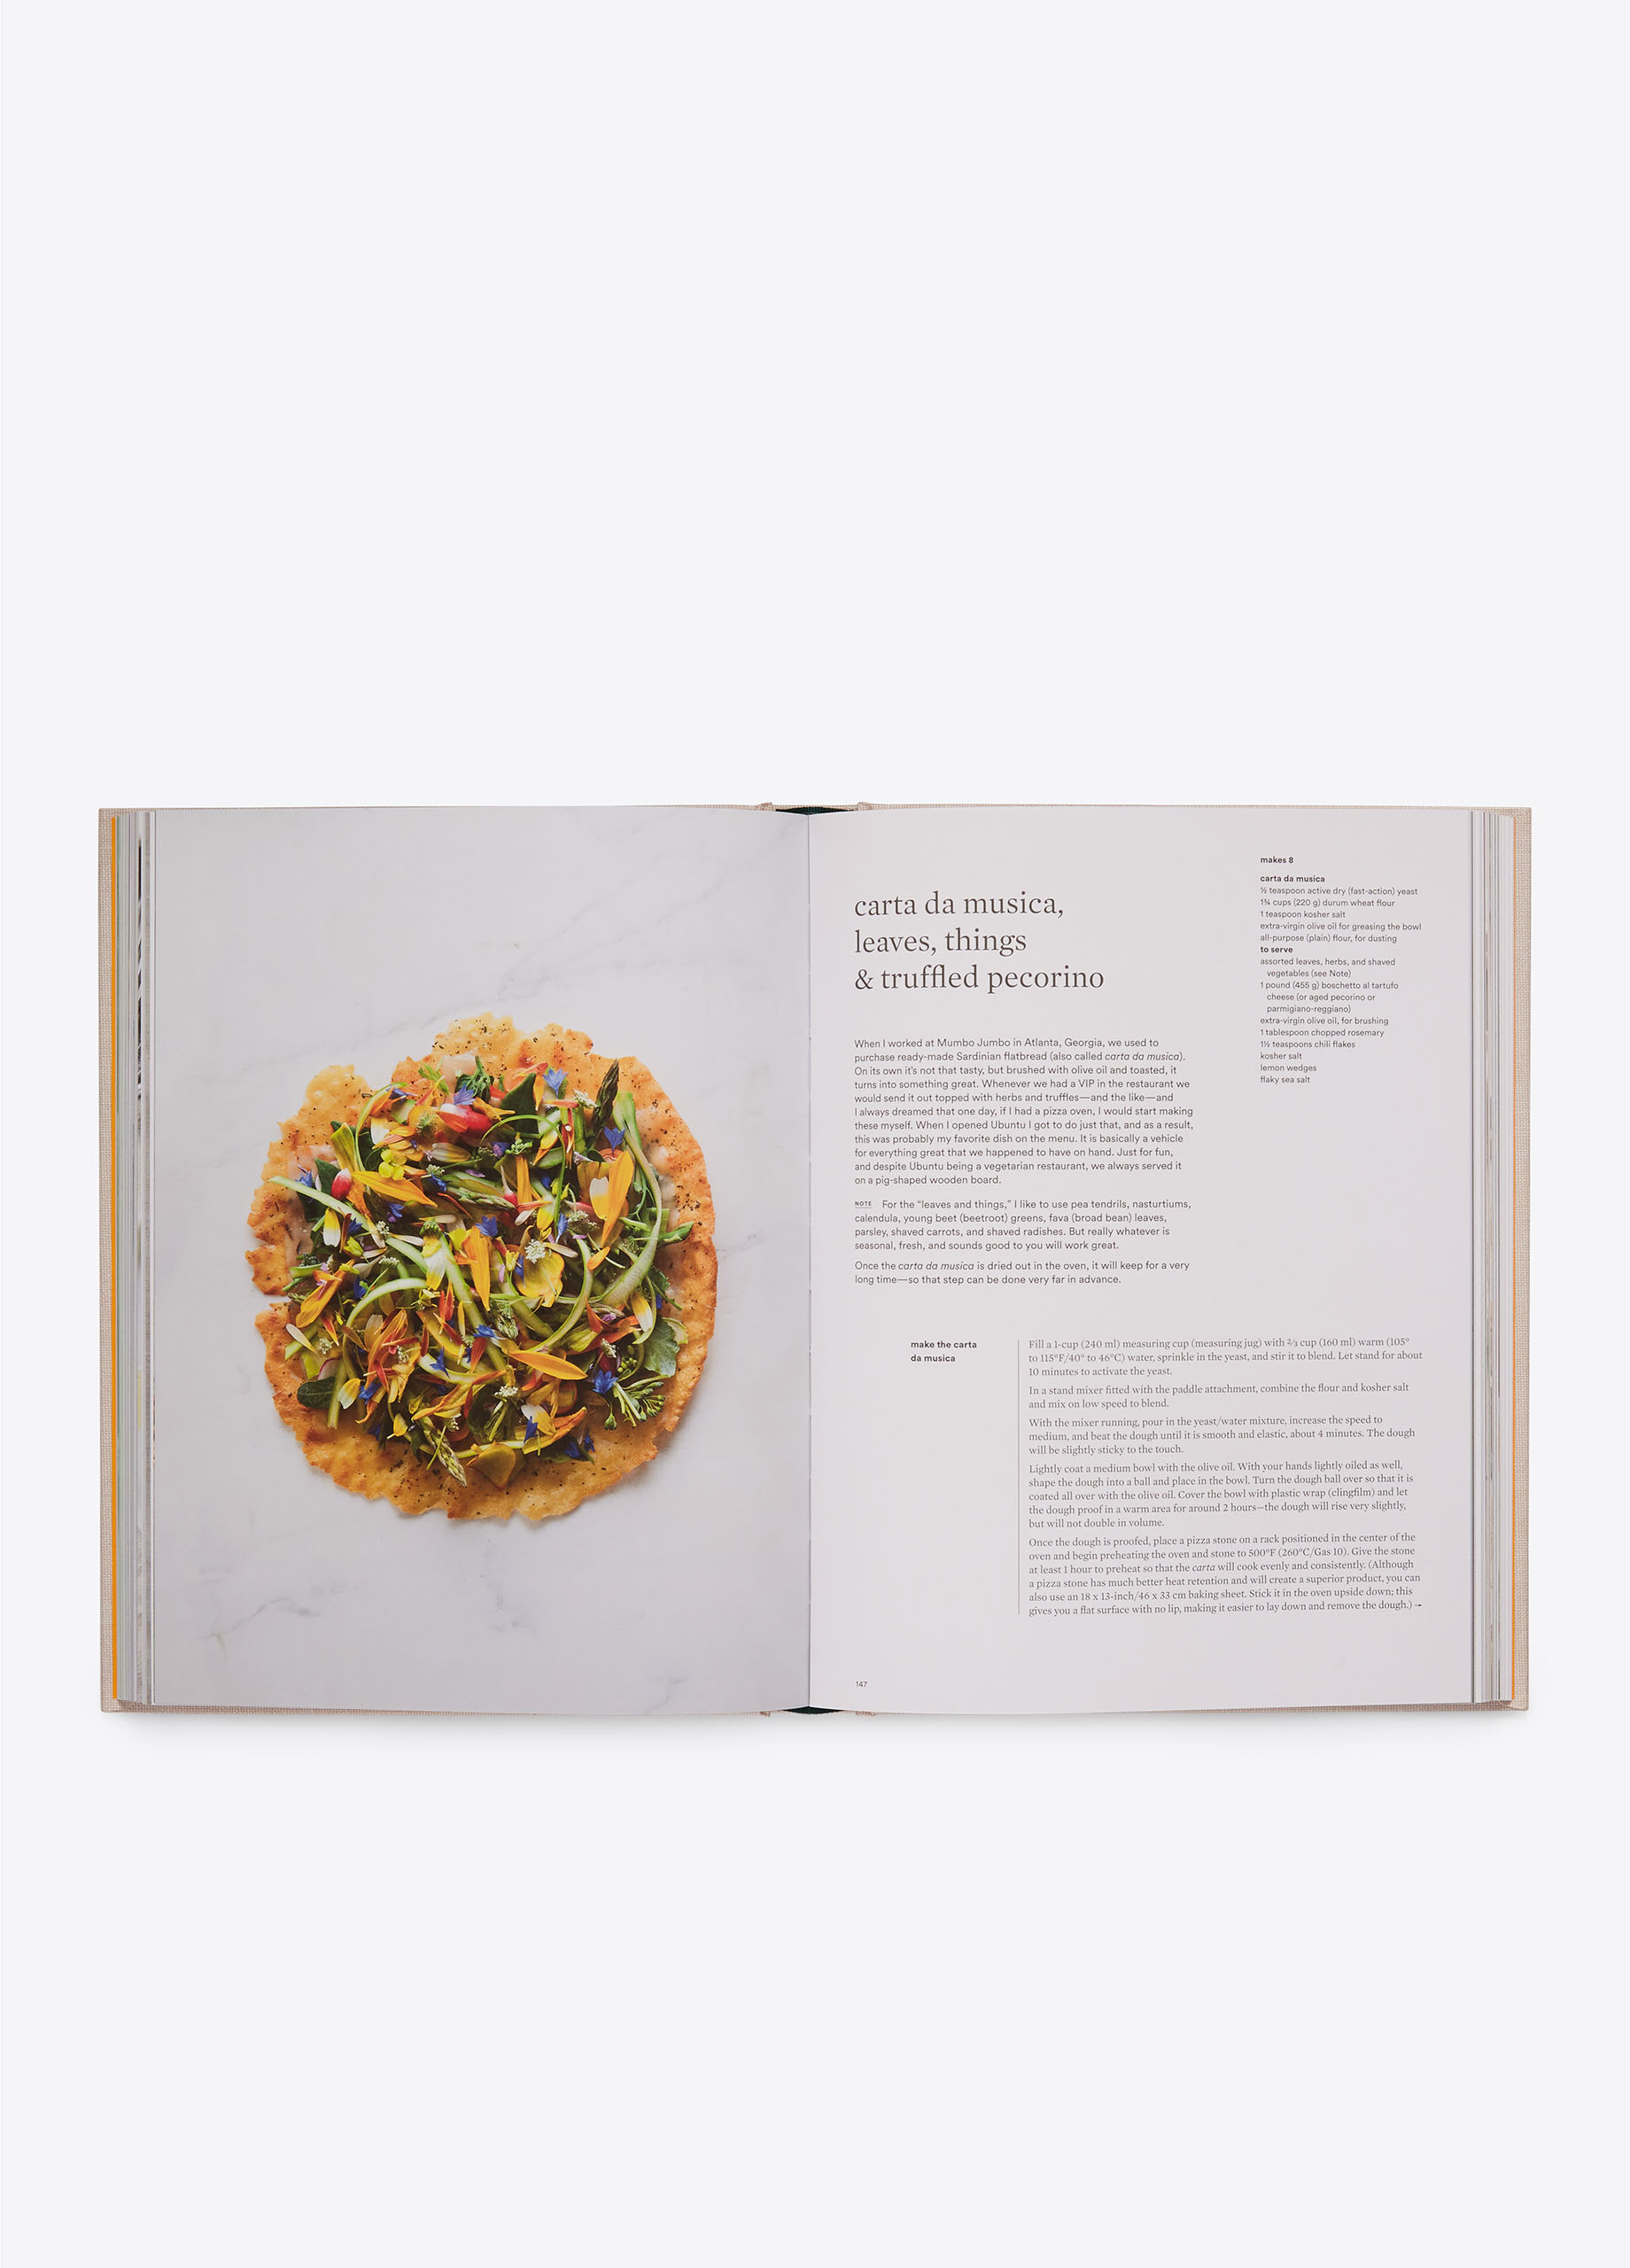 PHAIDON On Vegetables For Women Vince - 33 photos of slightly out of place things